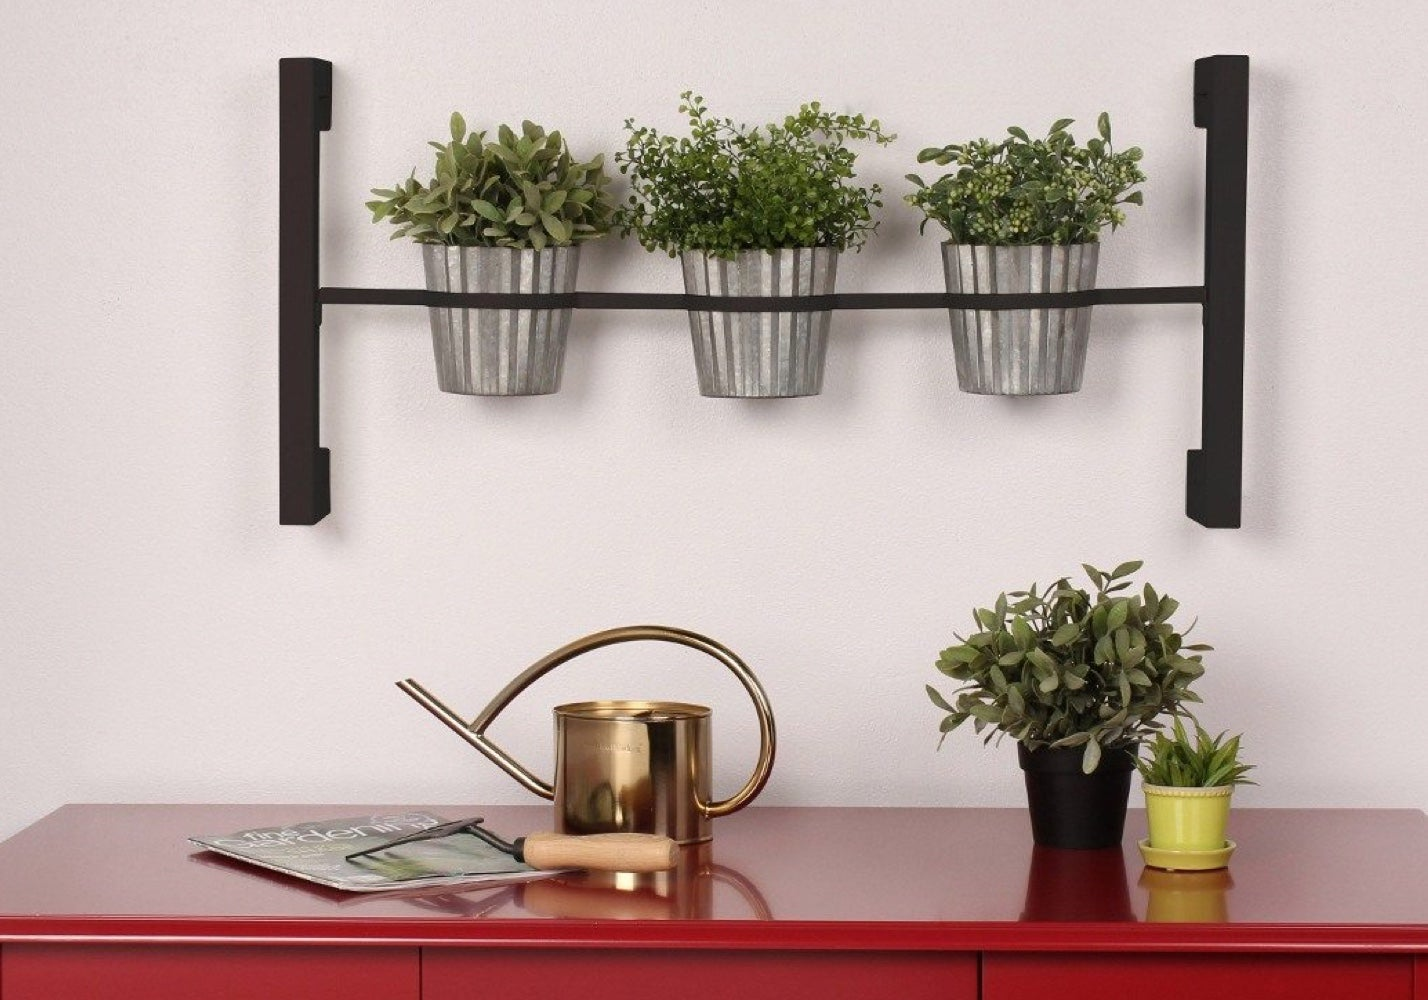 Close up of potted plants and gardening accessories